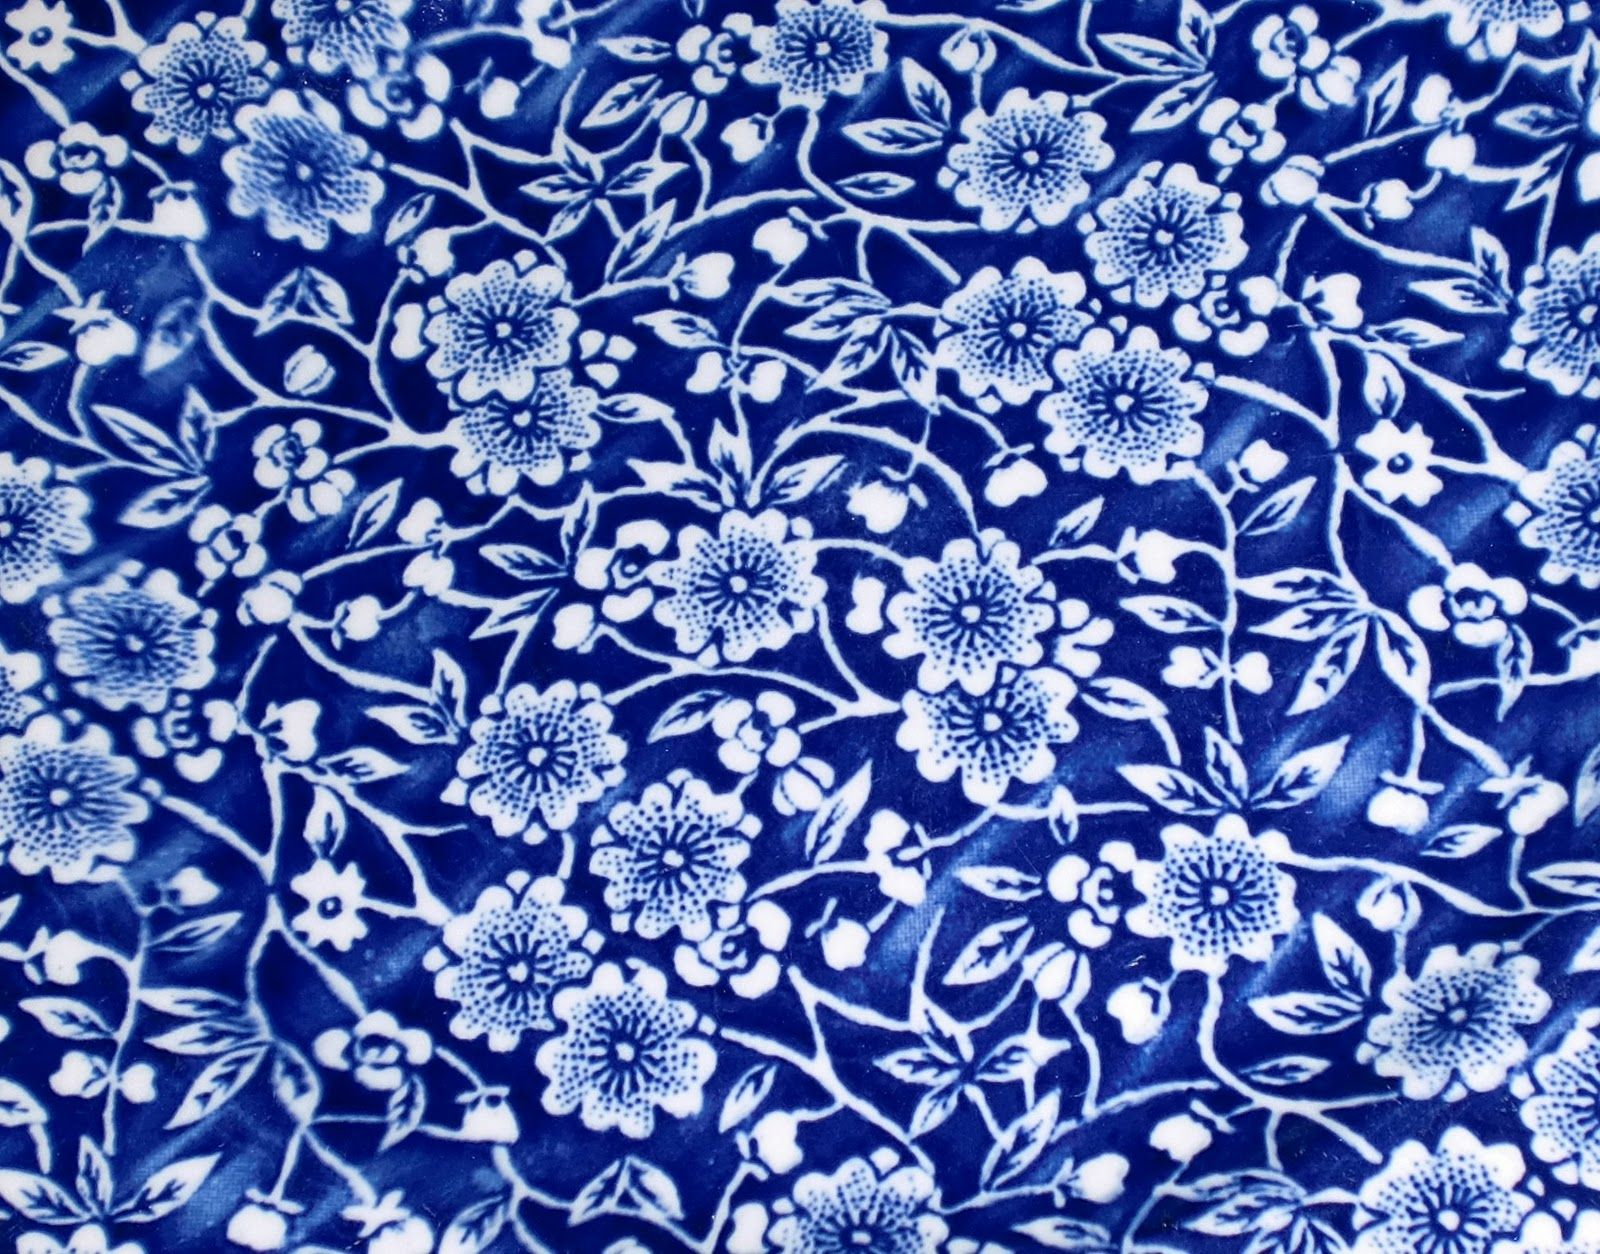 china sofa fabric blue slipcovers for sofas love this pattern take time tea